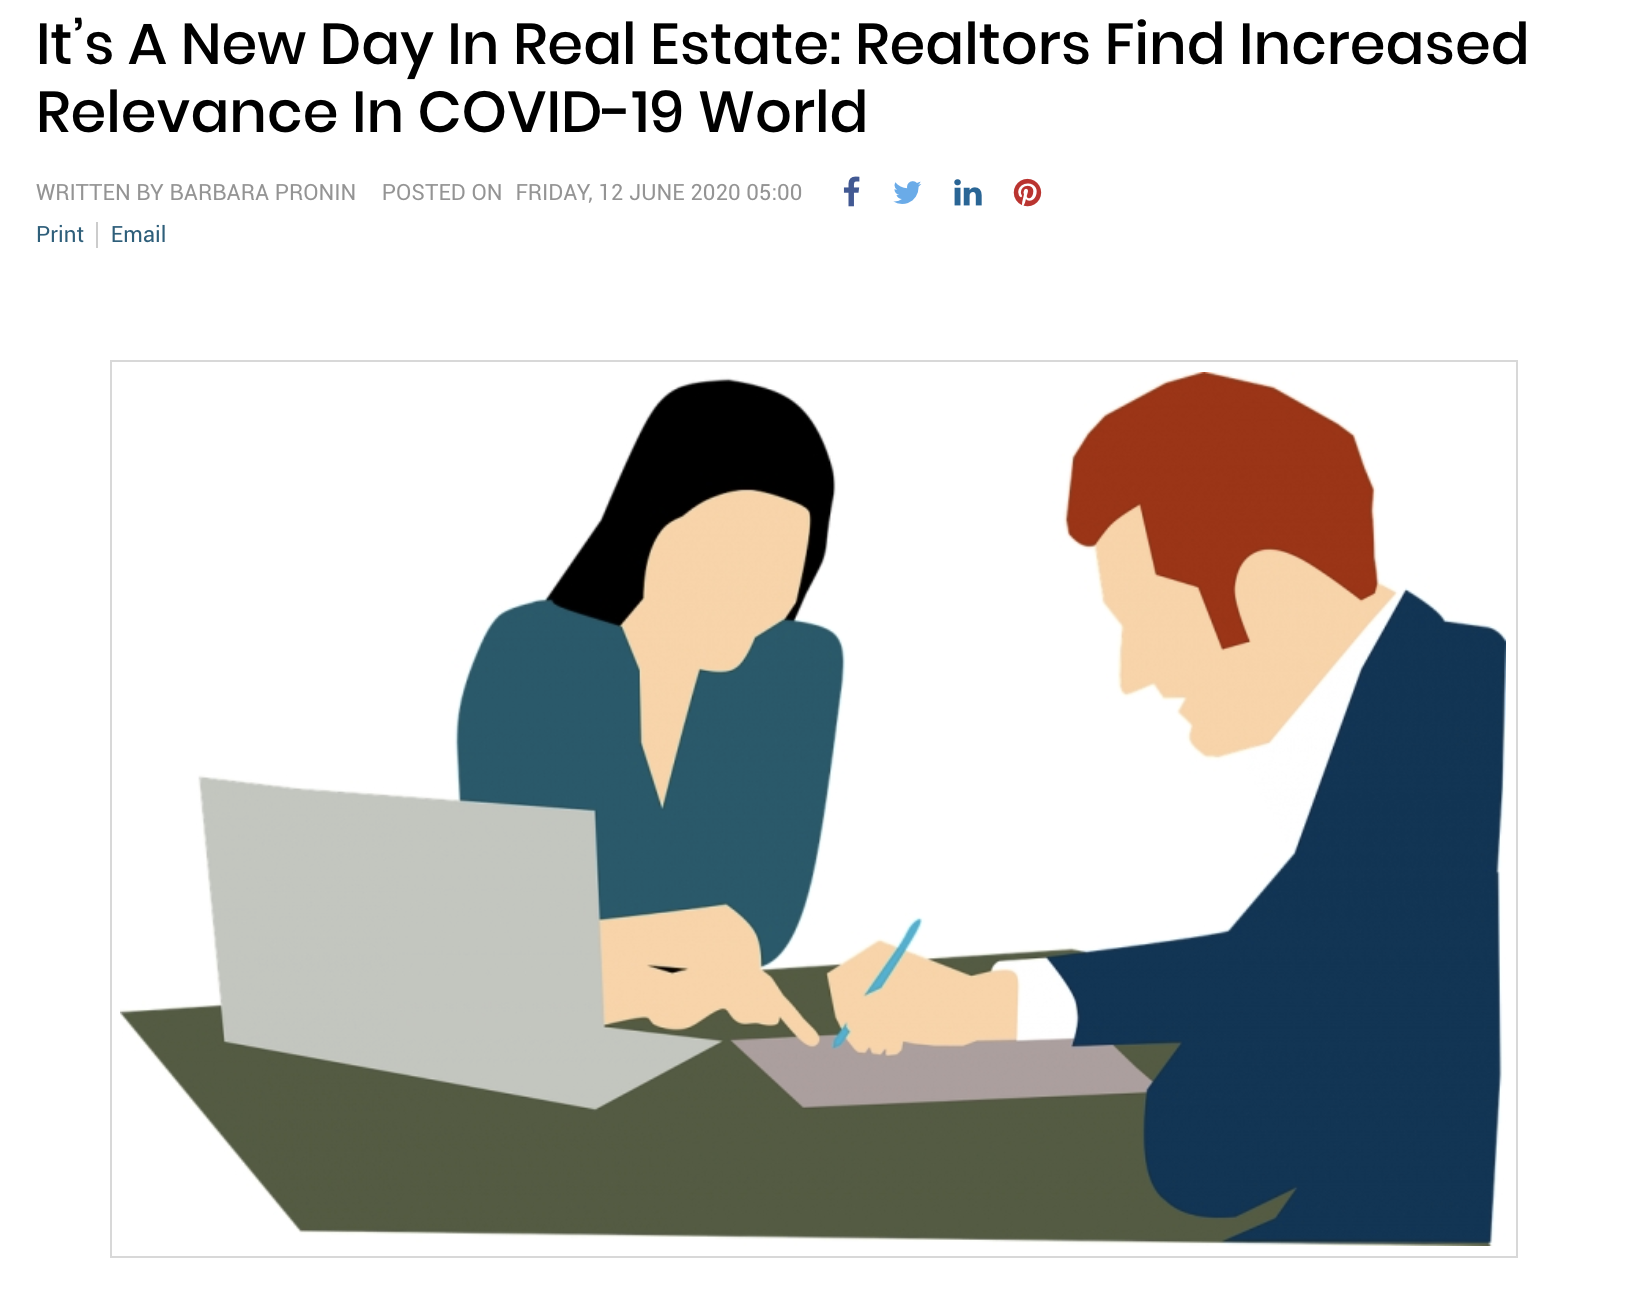 It's A New Day In Real Estate: Realtors Find Increased Relevance In COVID-19 World